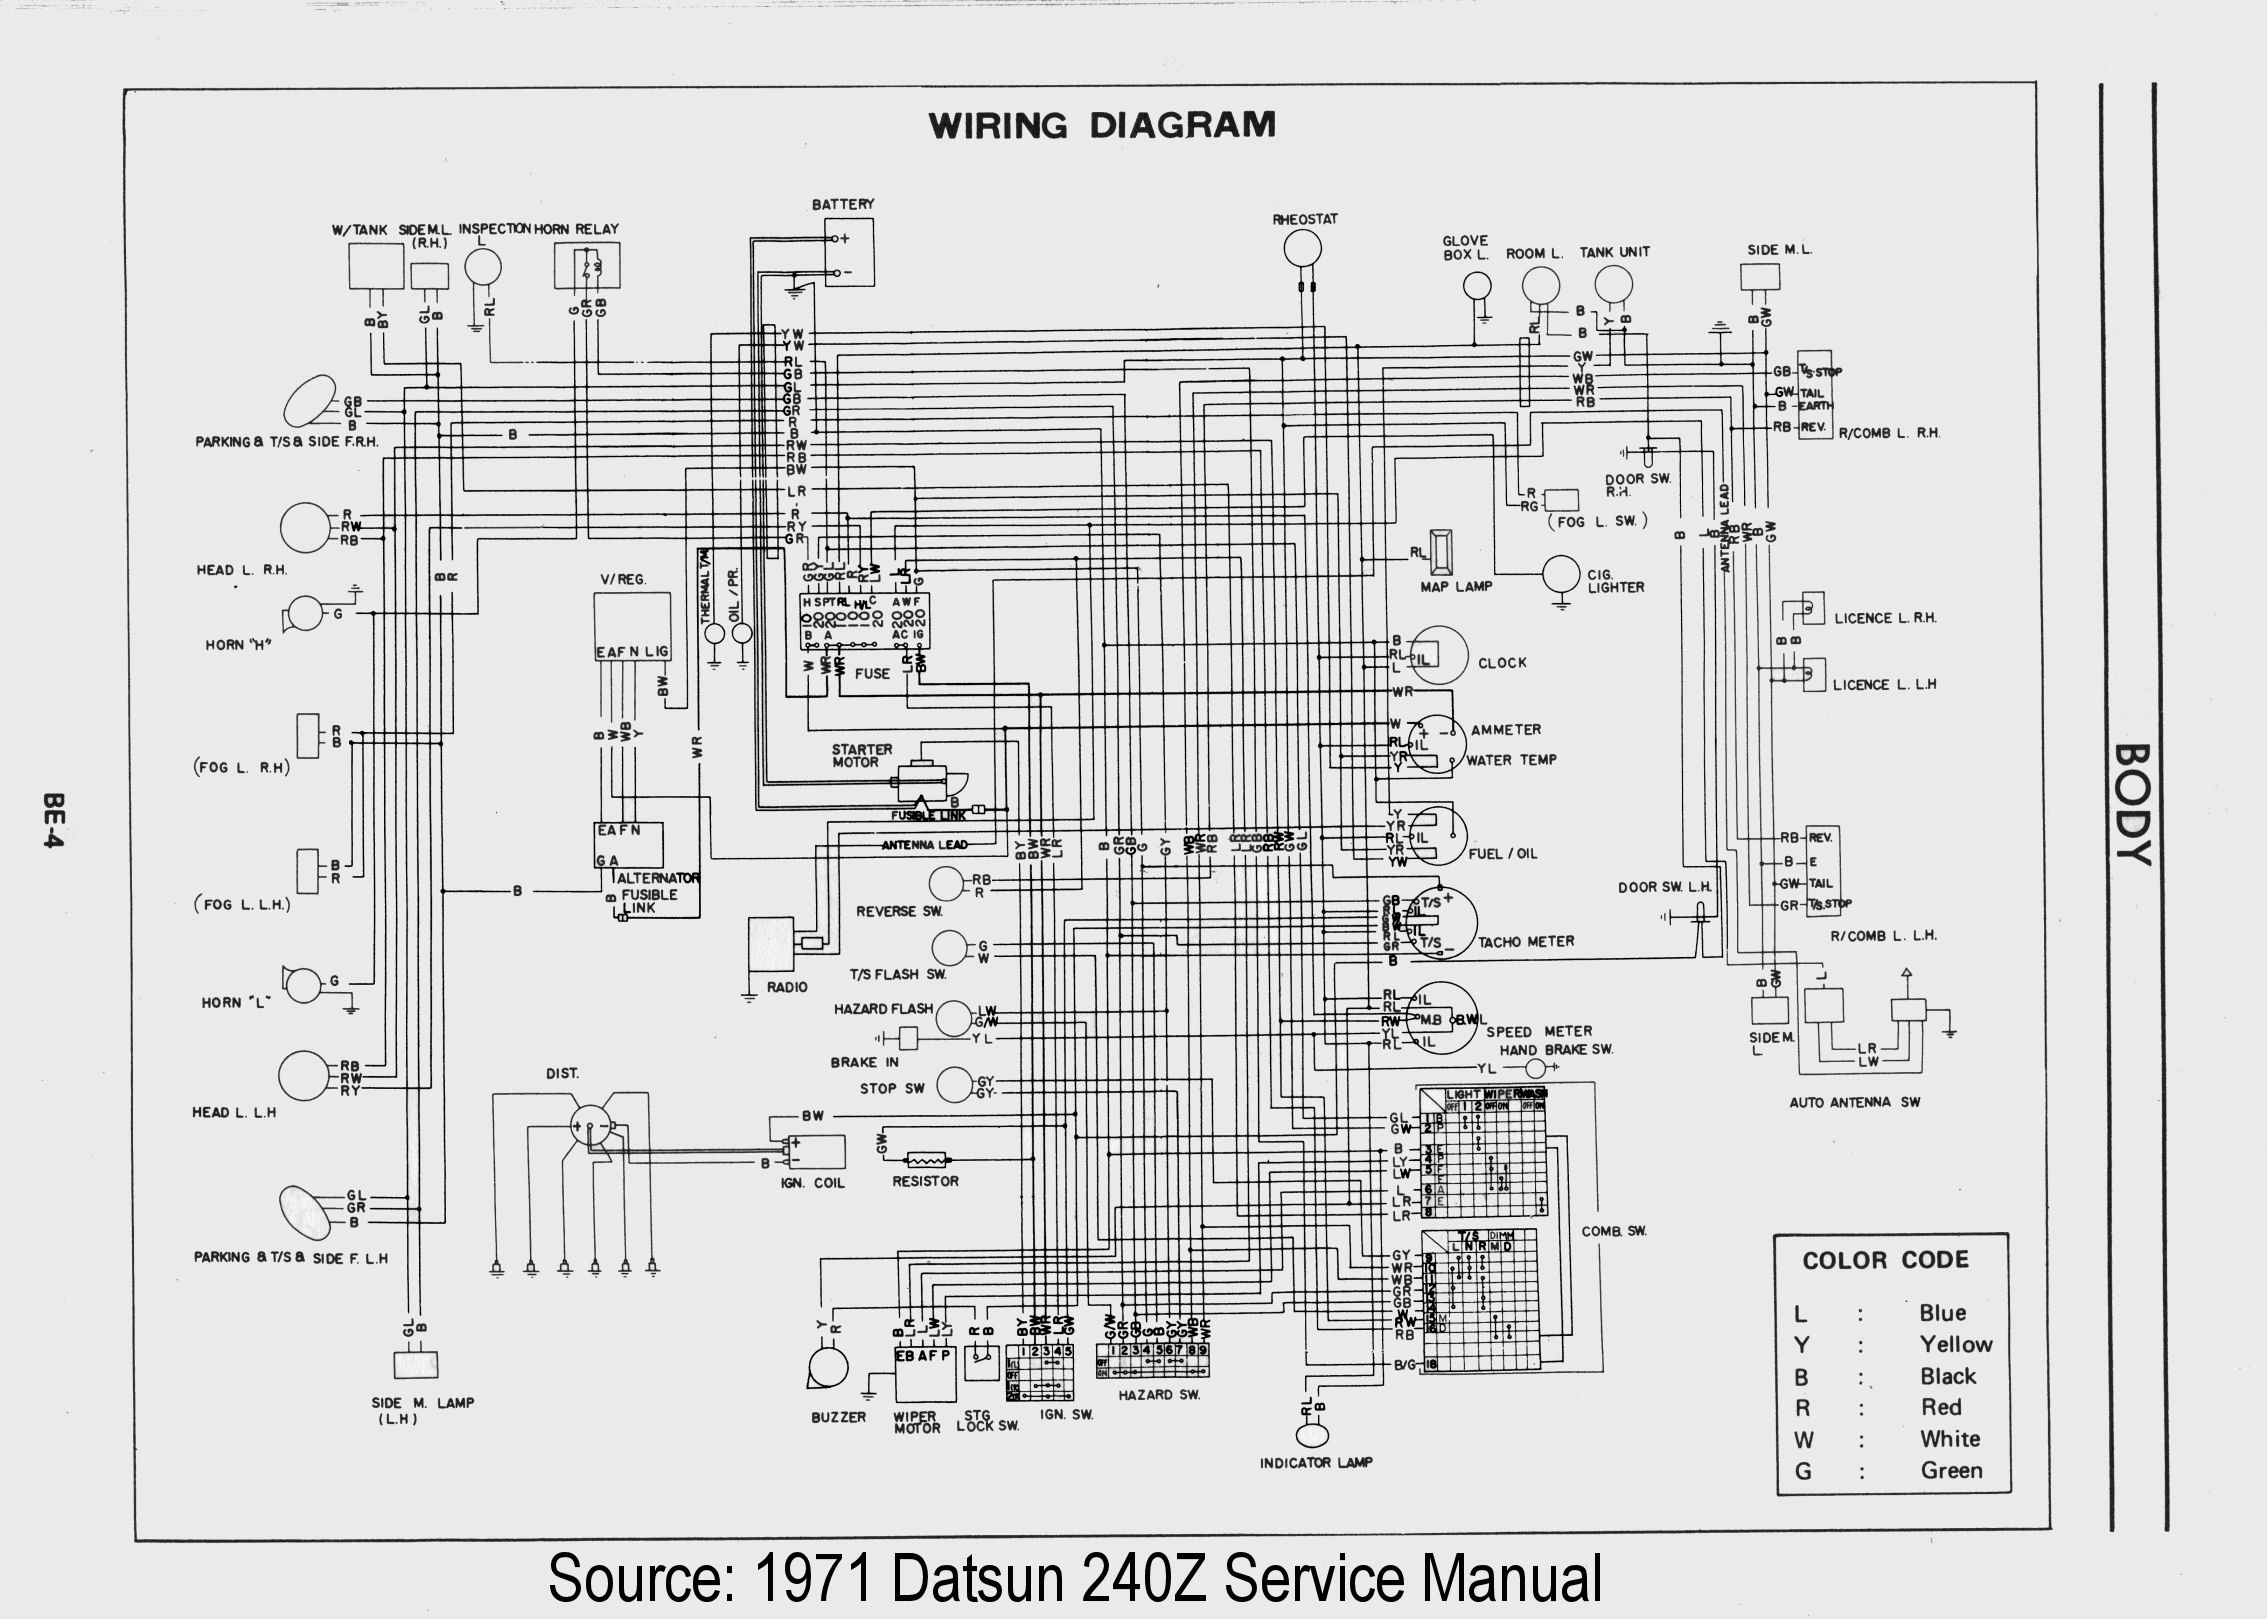 Wiring Diagram HiRes 2 240z wiring diagram 73 240z wiring diagram \u2022 wiring diagrams j In a 98 Dodge Dakota Wiring Harness at soozxer.org